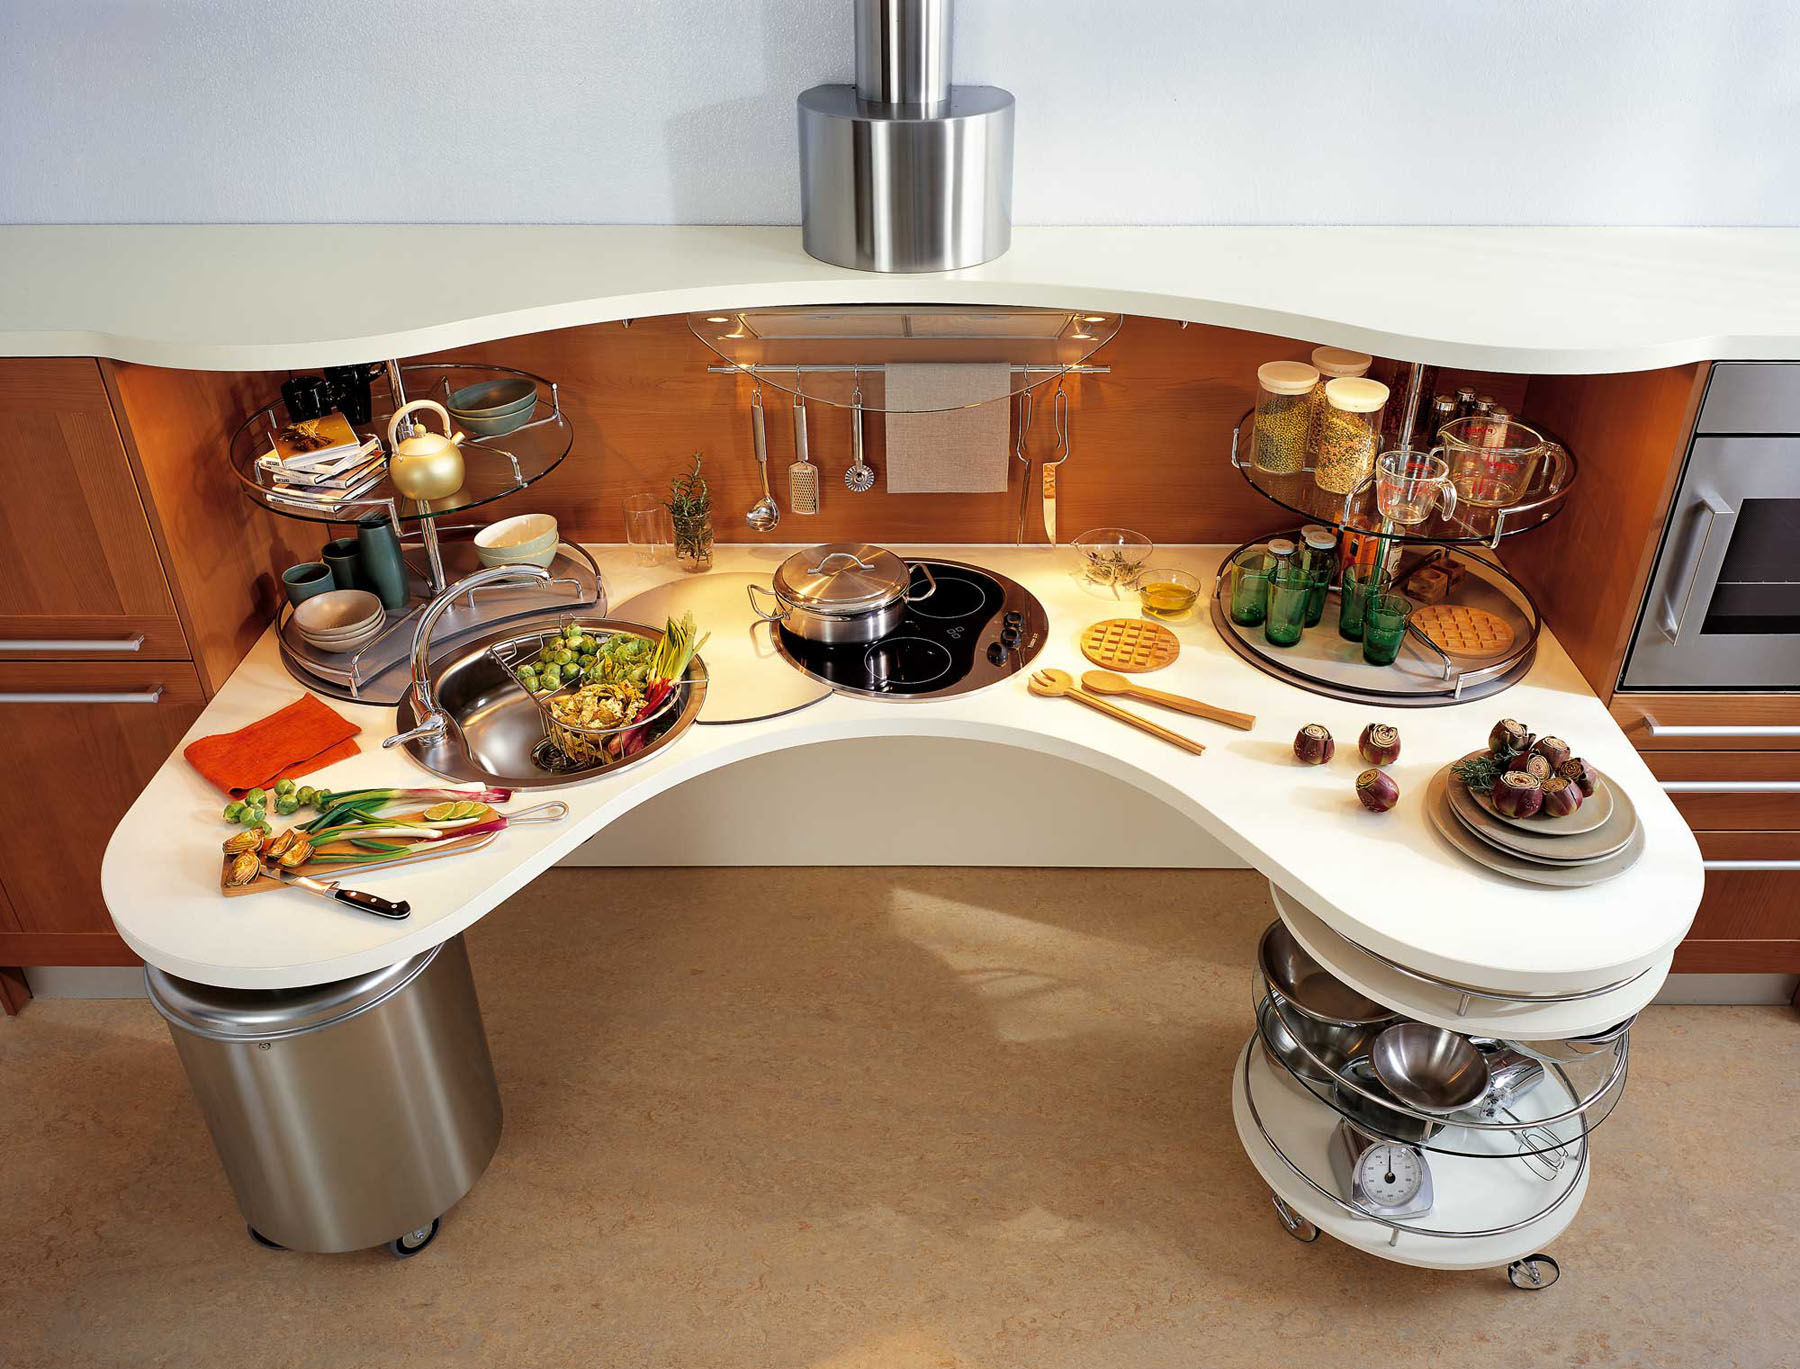 ergonomic italian kitchen design suitable for wheelchair users idesignarch interior design